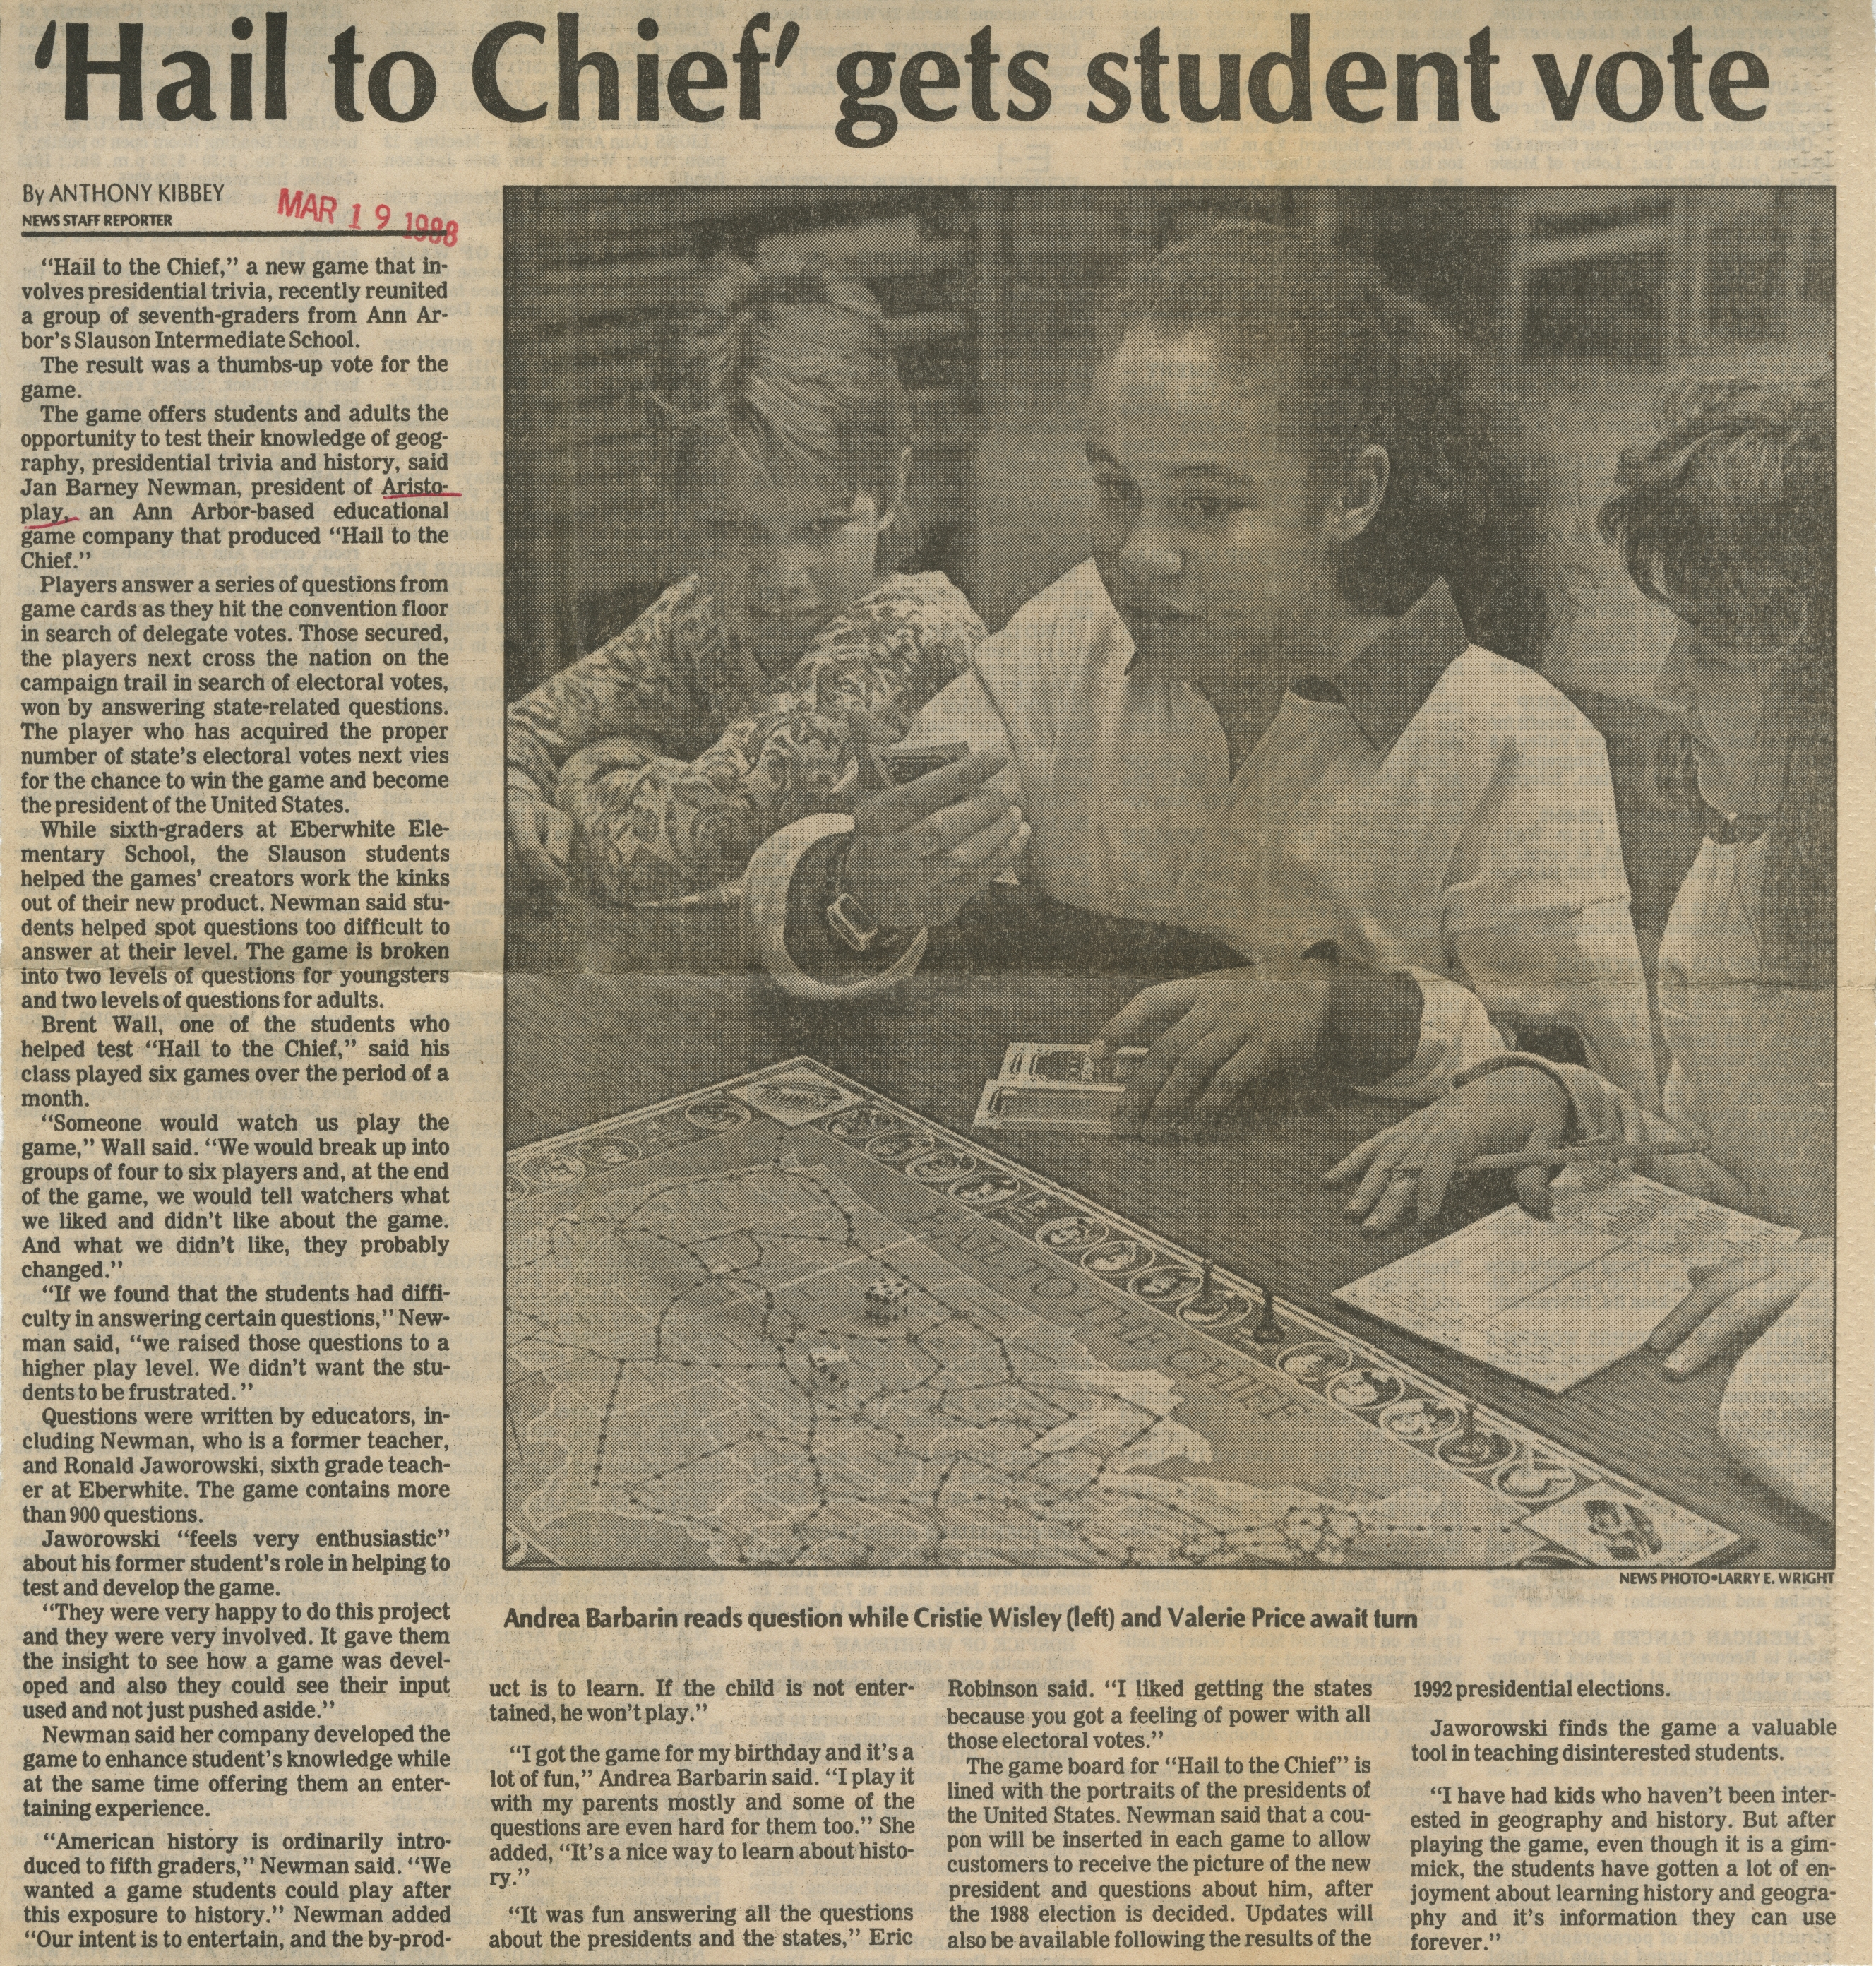 'Hail to Chief' gets student vote image